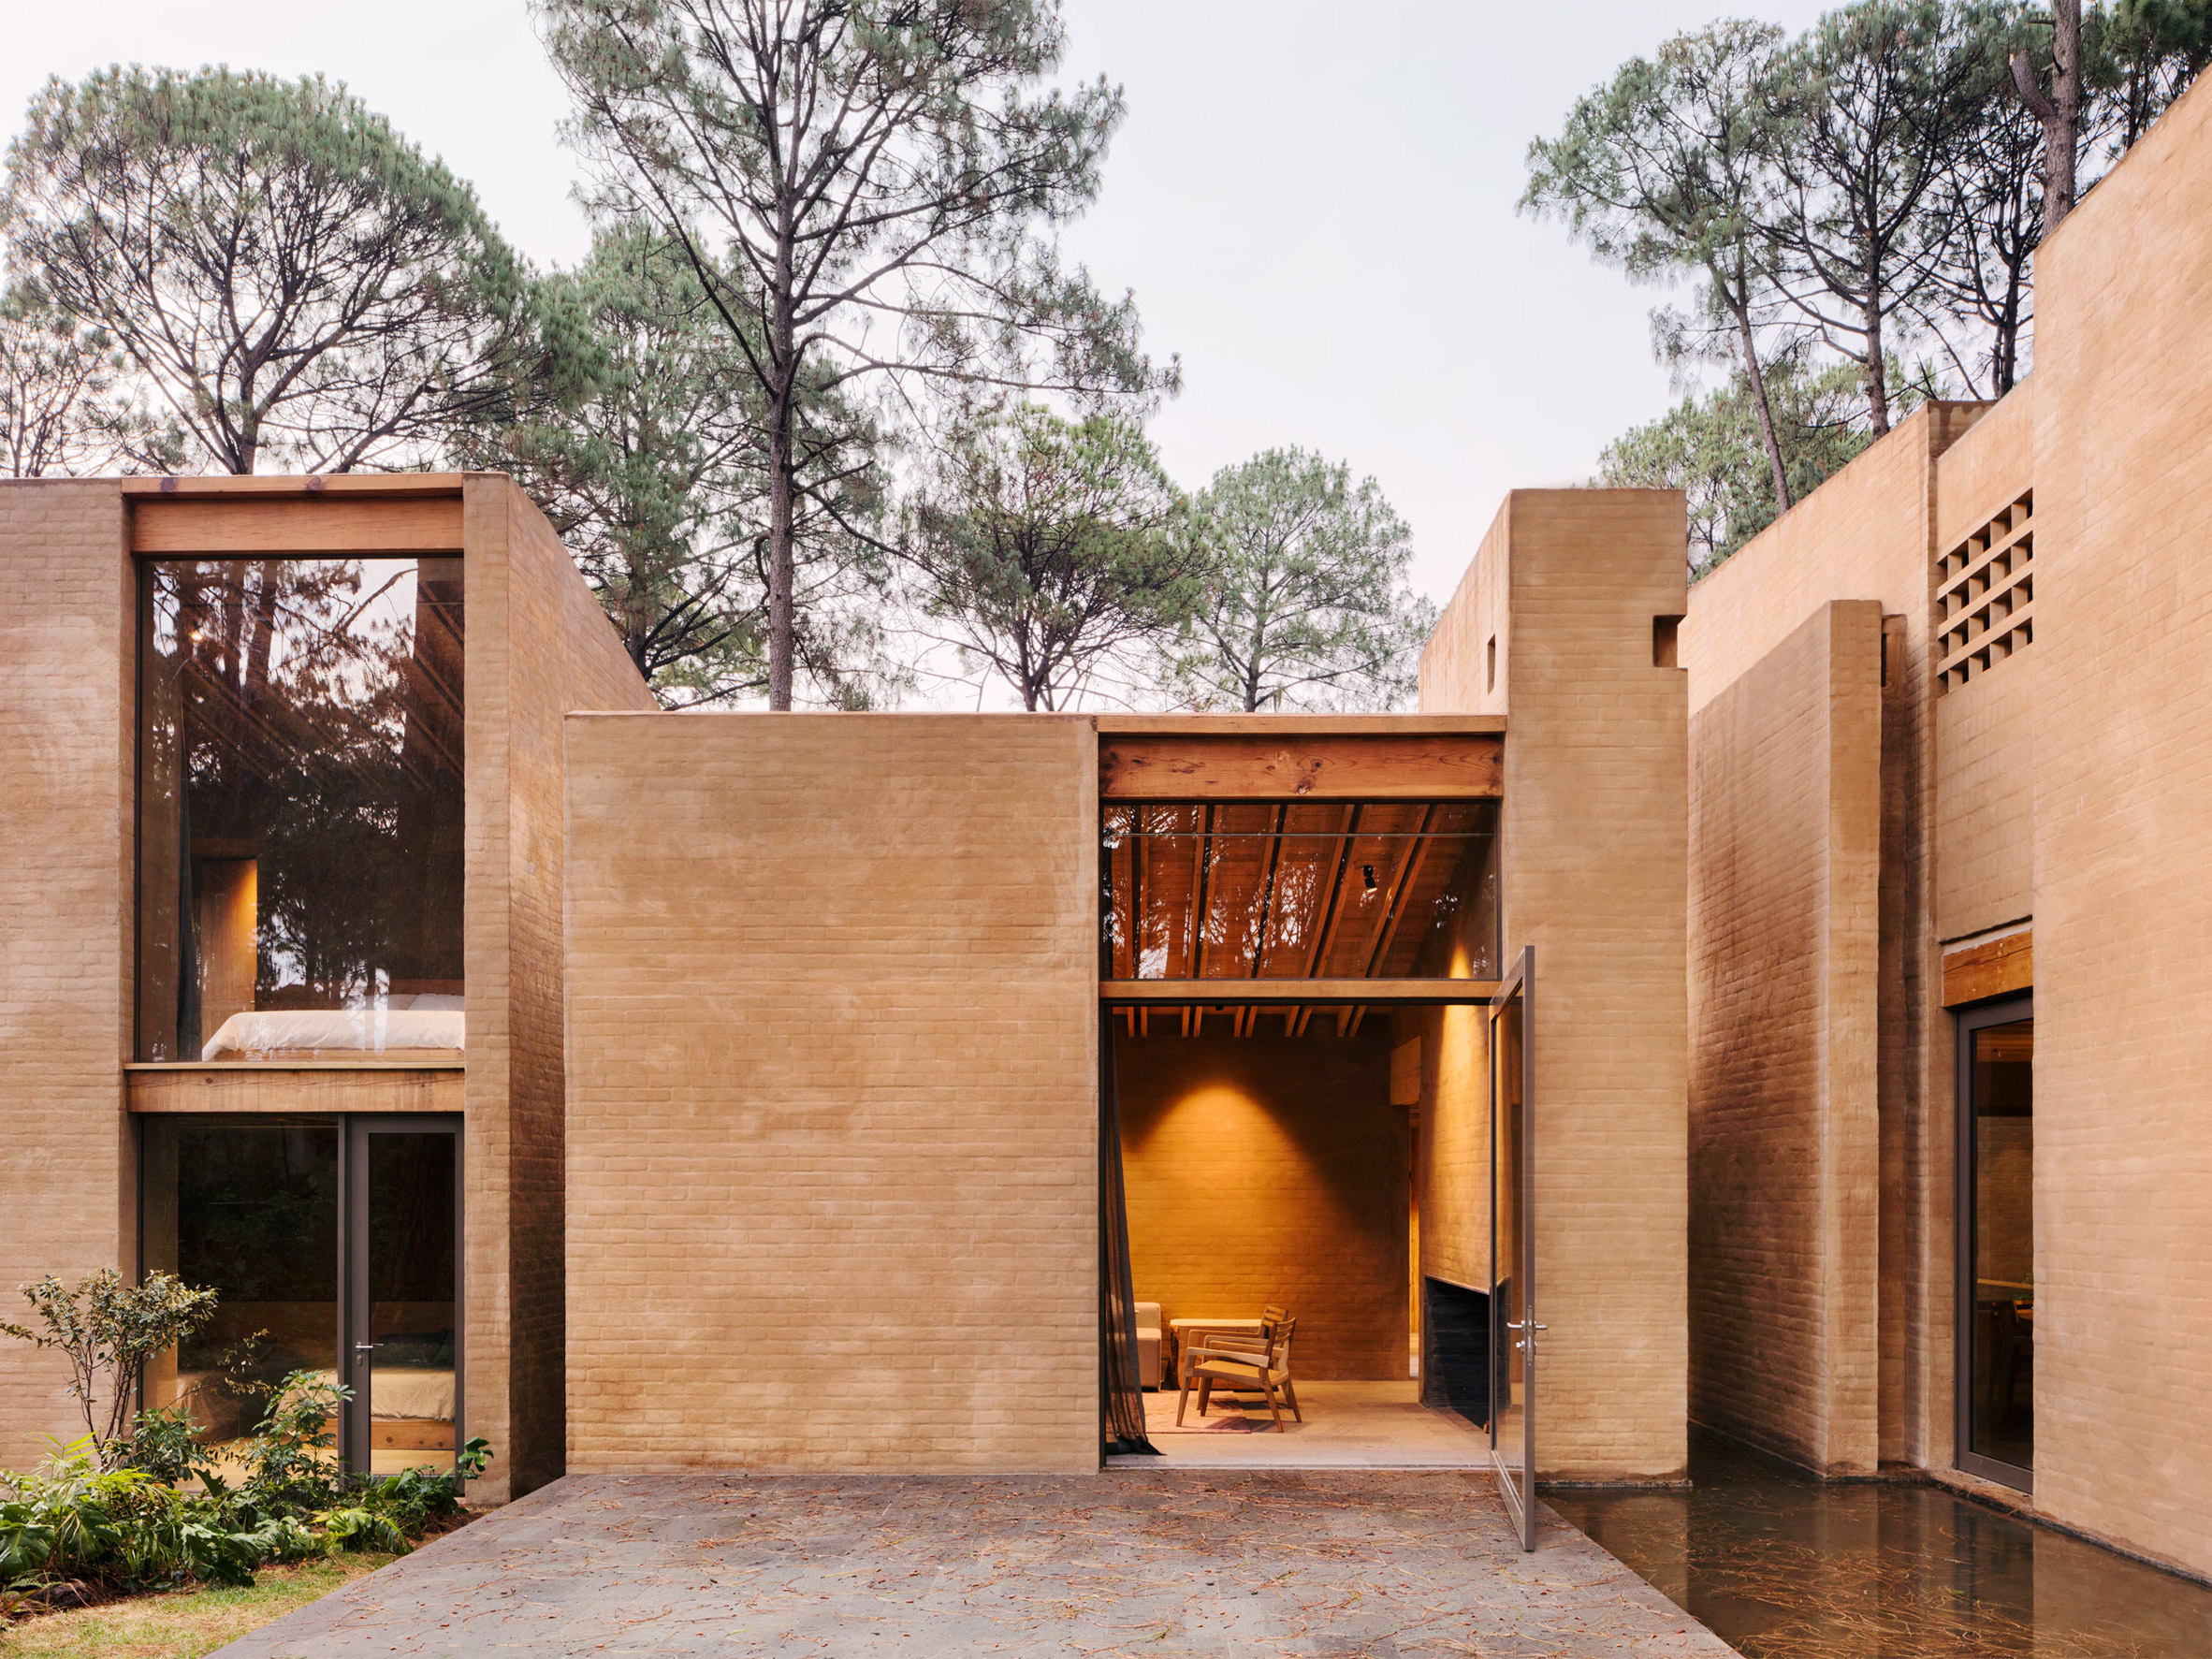 Soil-based render creates pink walls for houses built by Taller Hector Barroso in a Mexican forest